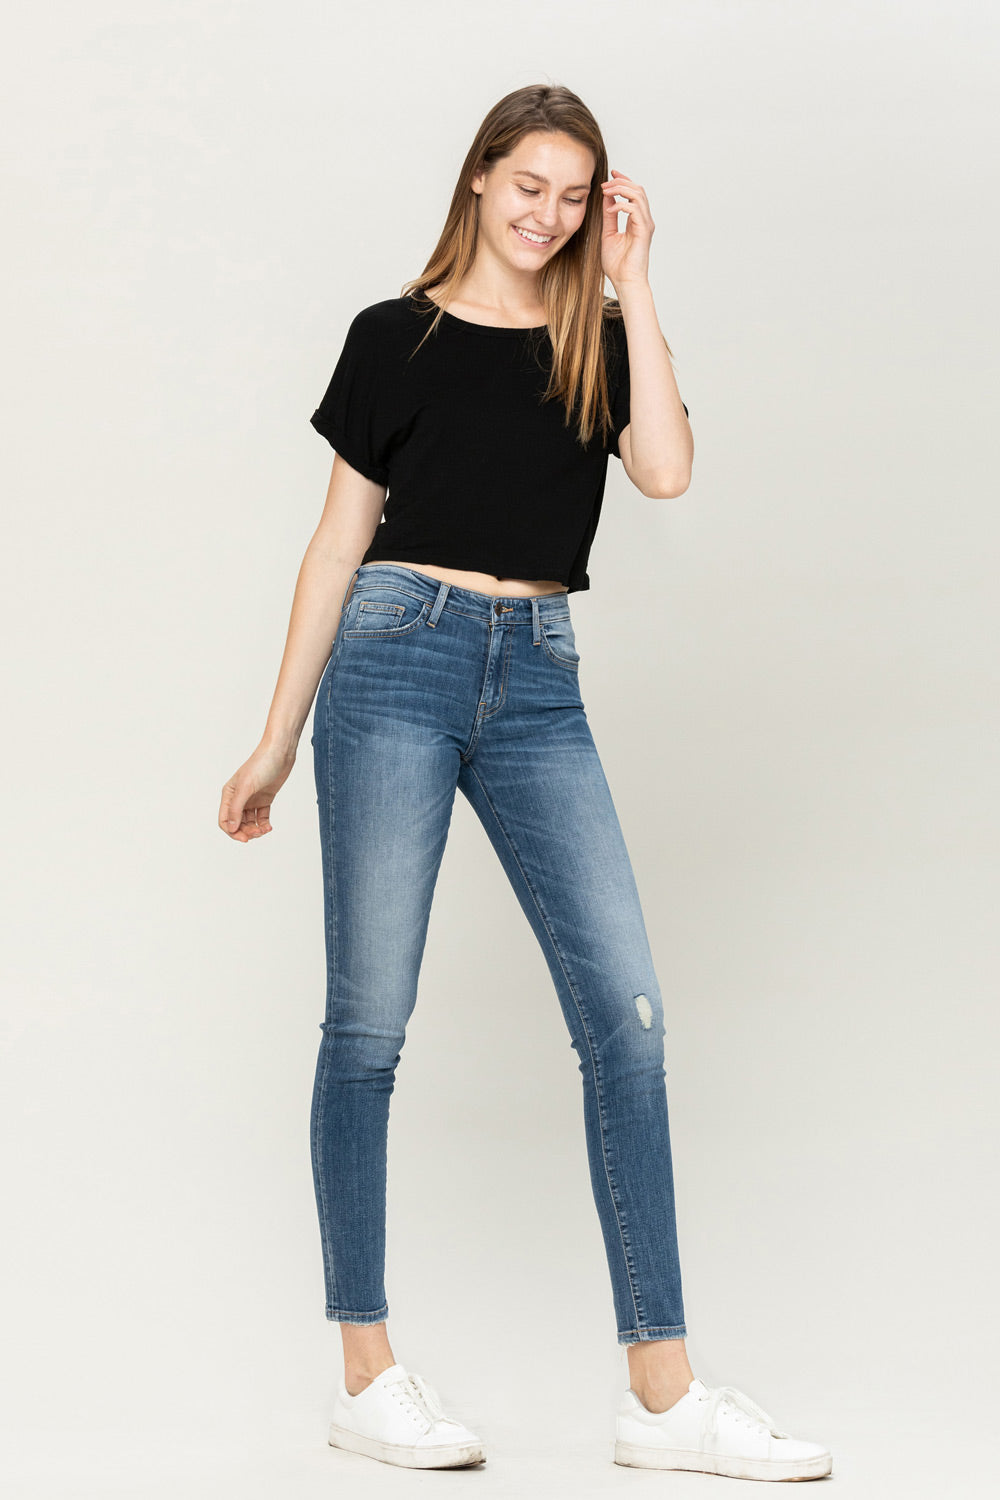 Y3517 - mid rise distressed ankle skinny